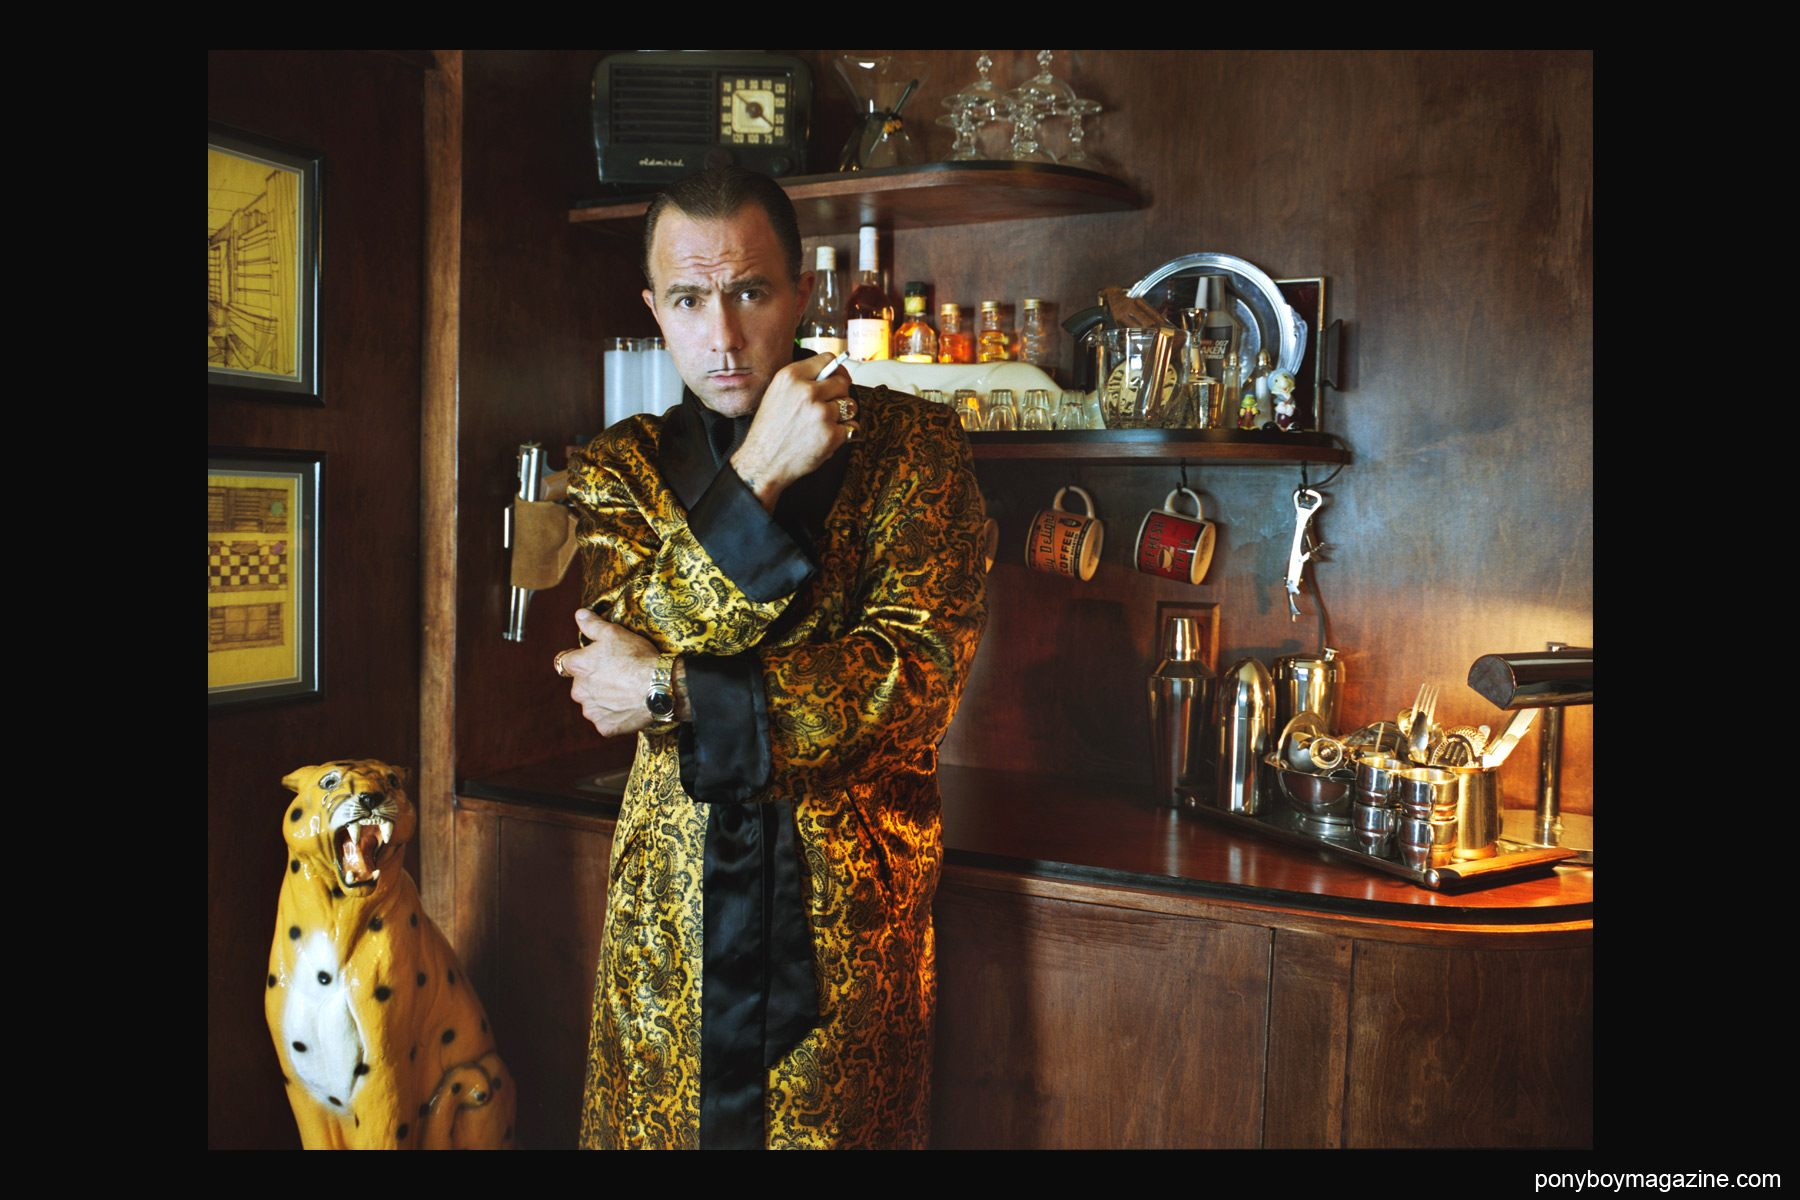 A silk robed Michele Savoia photographed in his haberdashery by Alexander Thompson for Ponyboy Magazine in New York City.